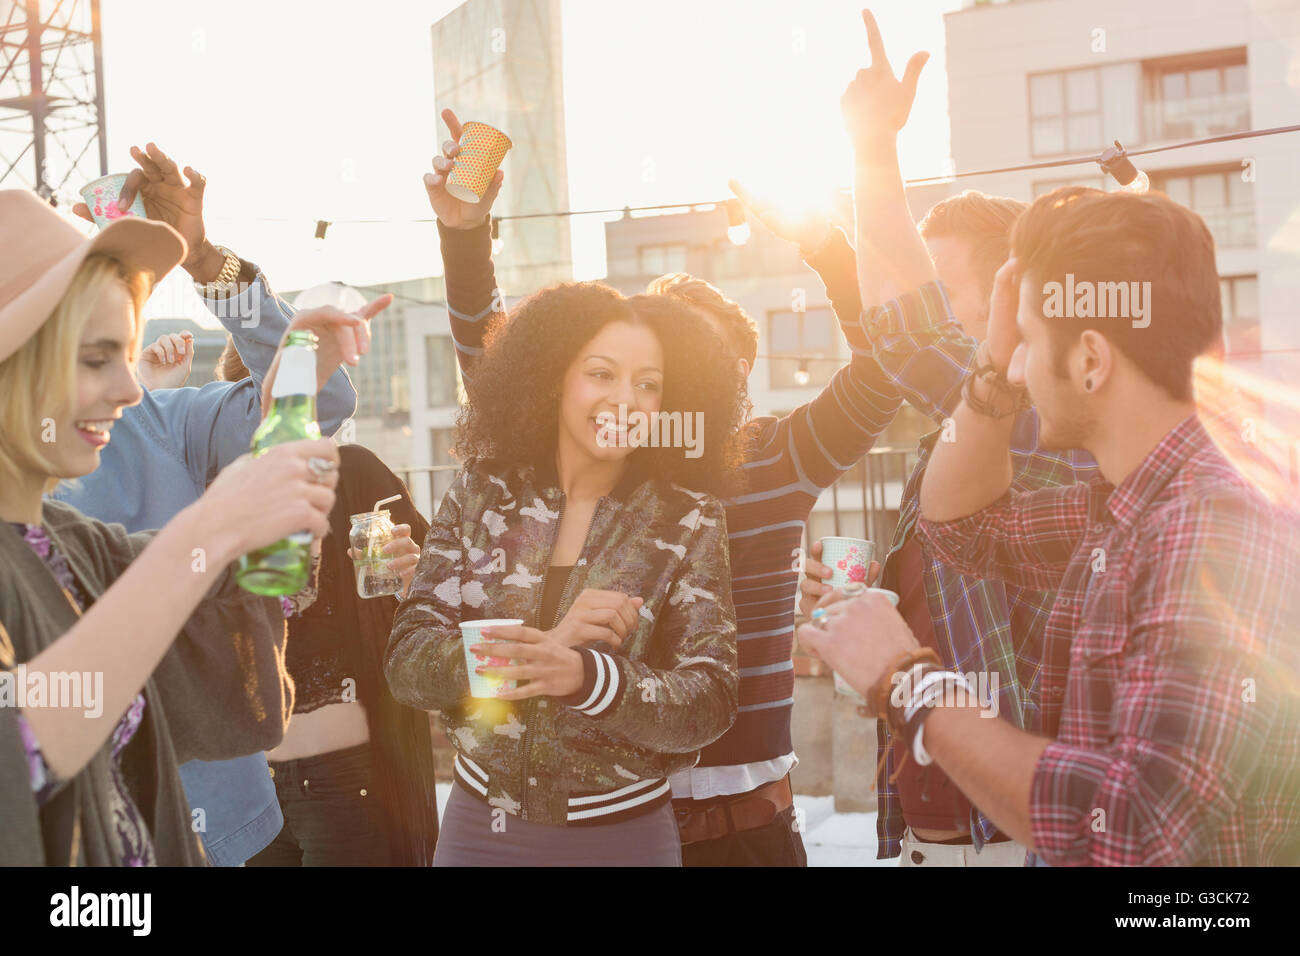 Enthusiastic young adult friends dancing and drinking at rooftop party - Stock Image